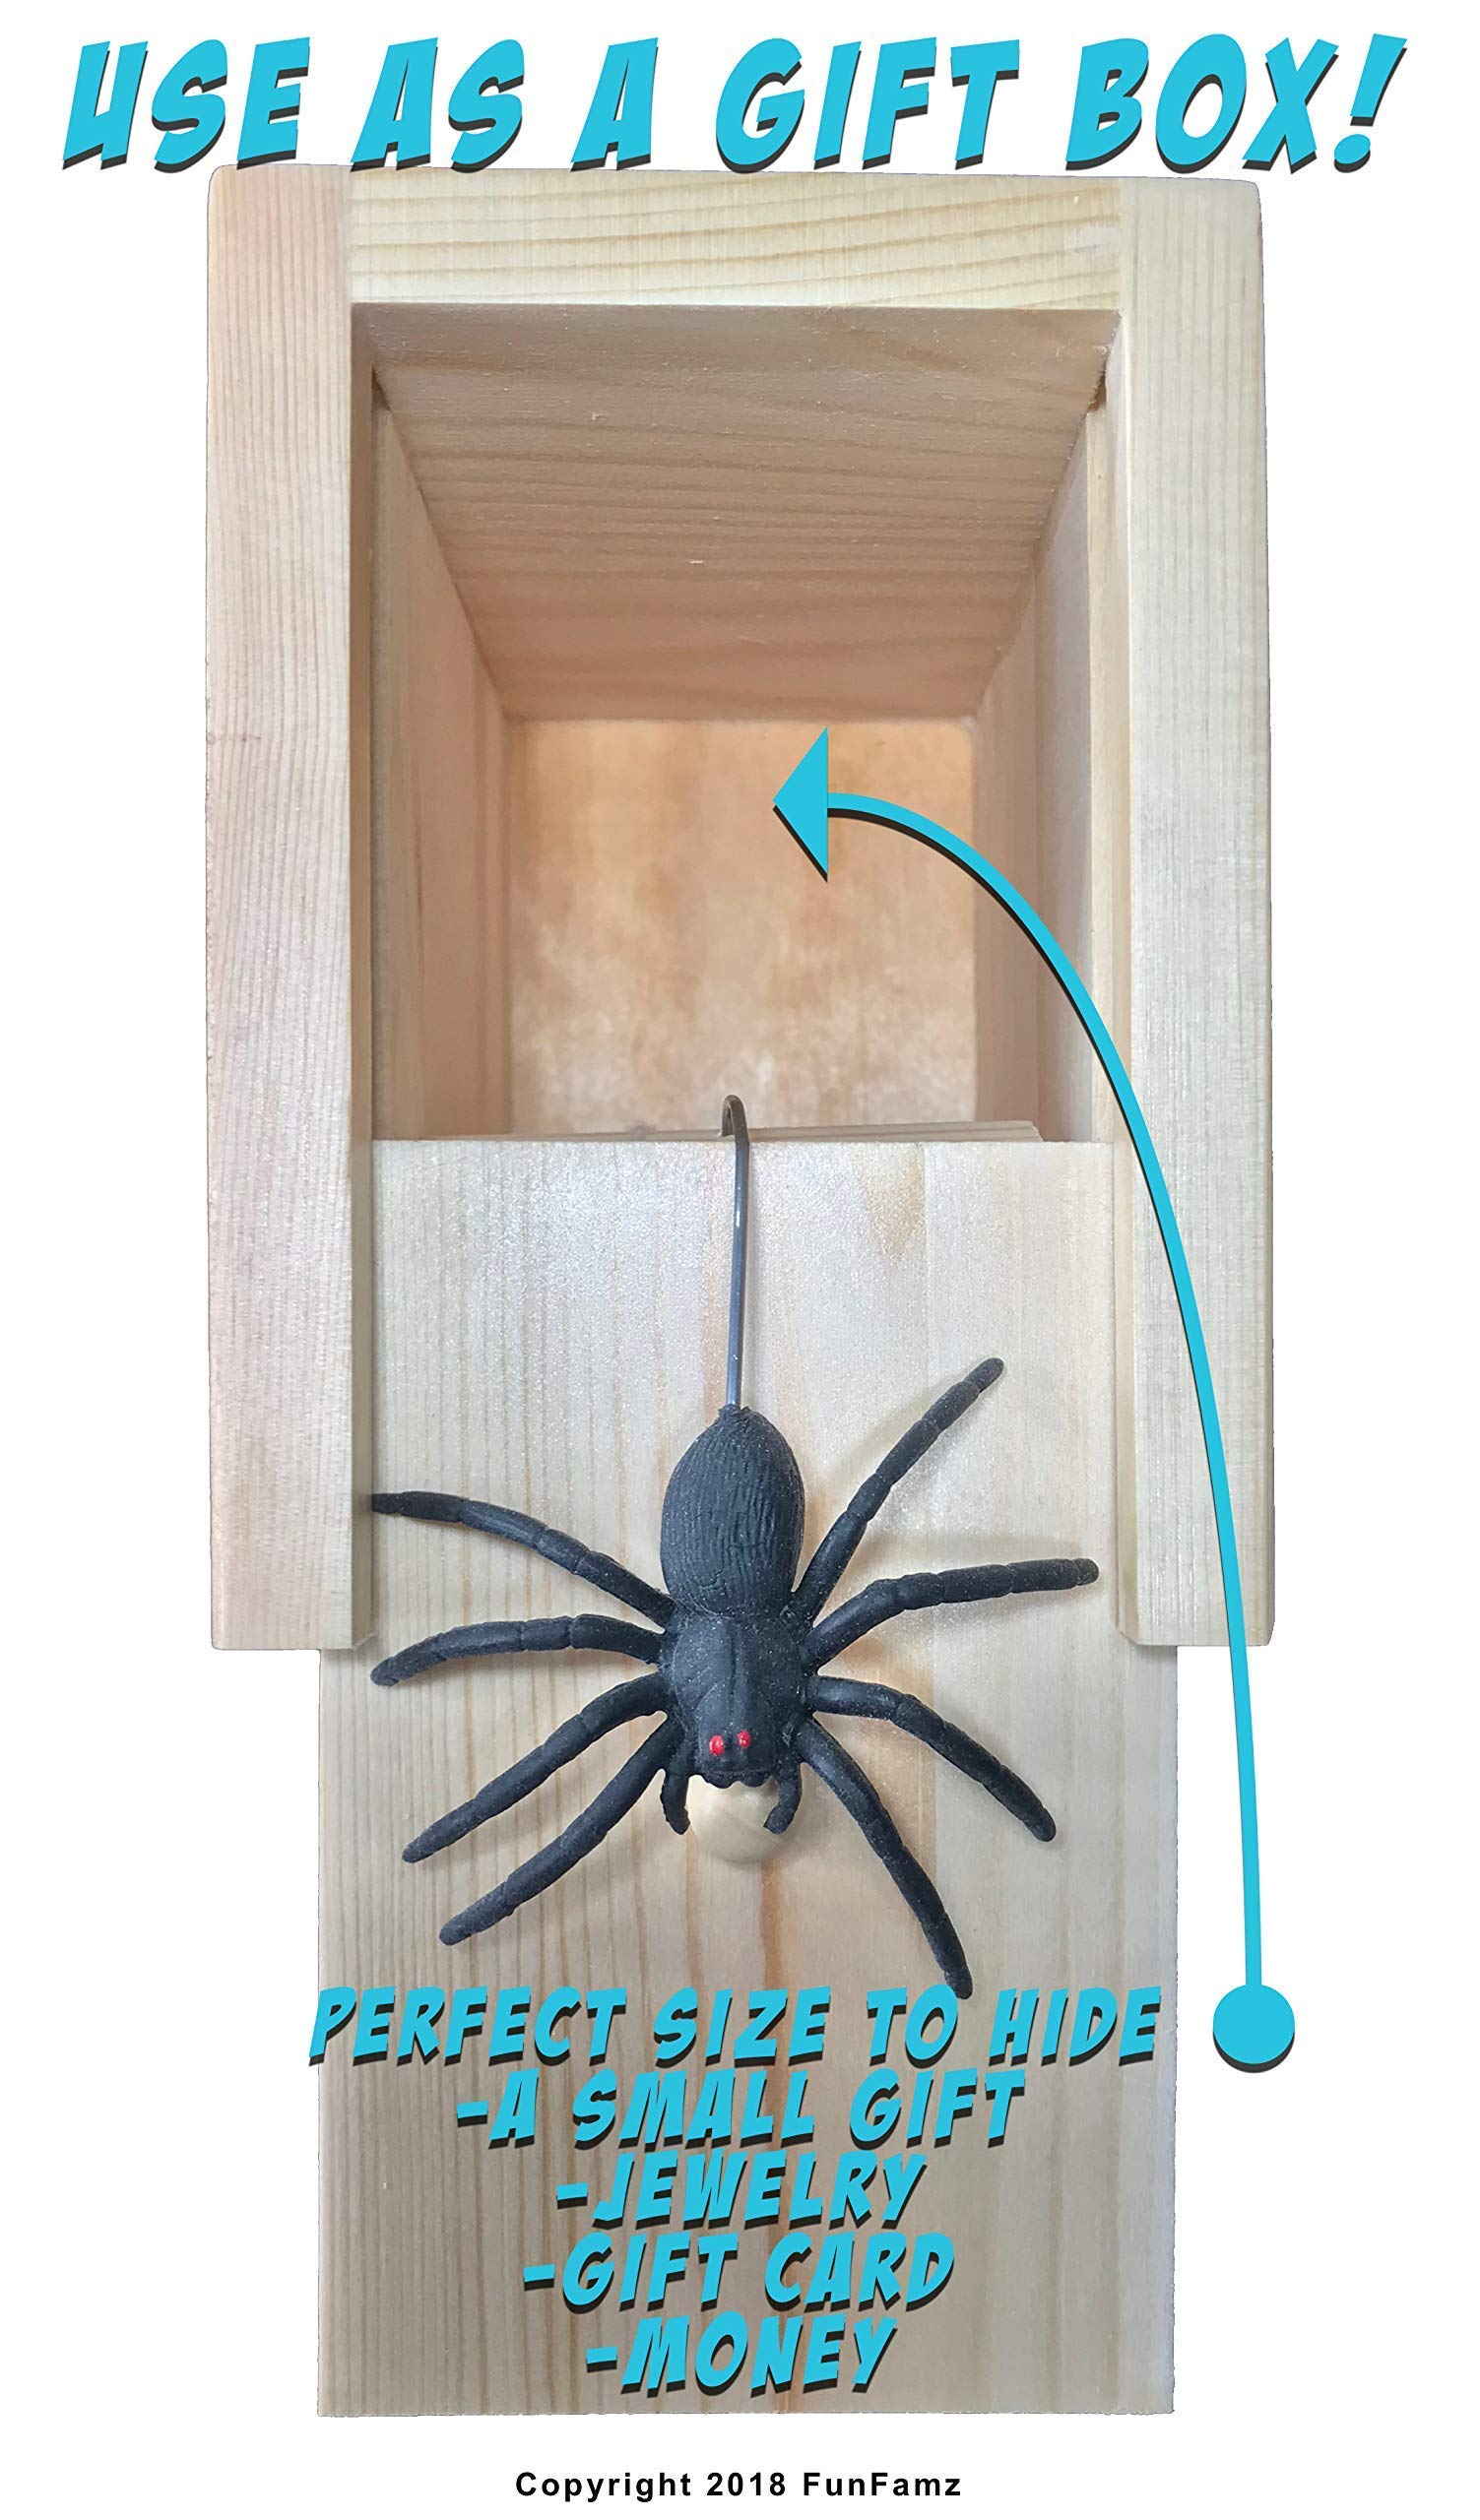 The Original Spider Prank Box- Hilarious Wooden Box Toy Prank, Funny Money Gift Box Surprise Toy, and Christmas Gag Gift Prank for Boys, Girls, Adults by FunFamz by FunFamz (Image #8)